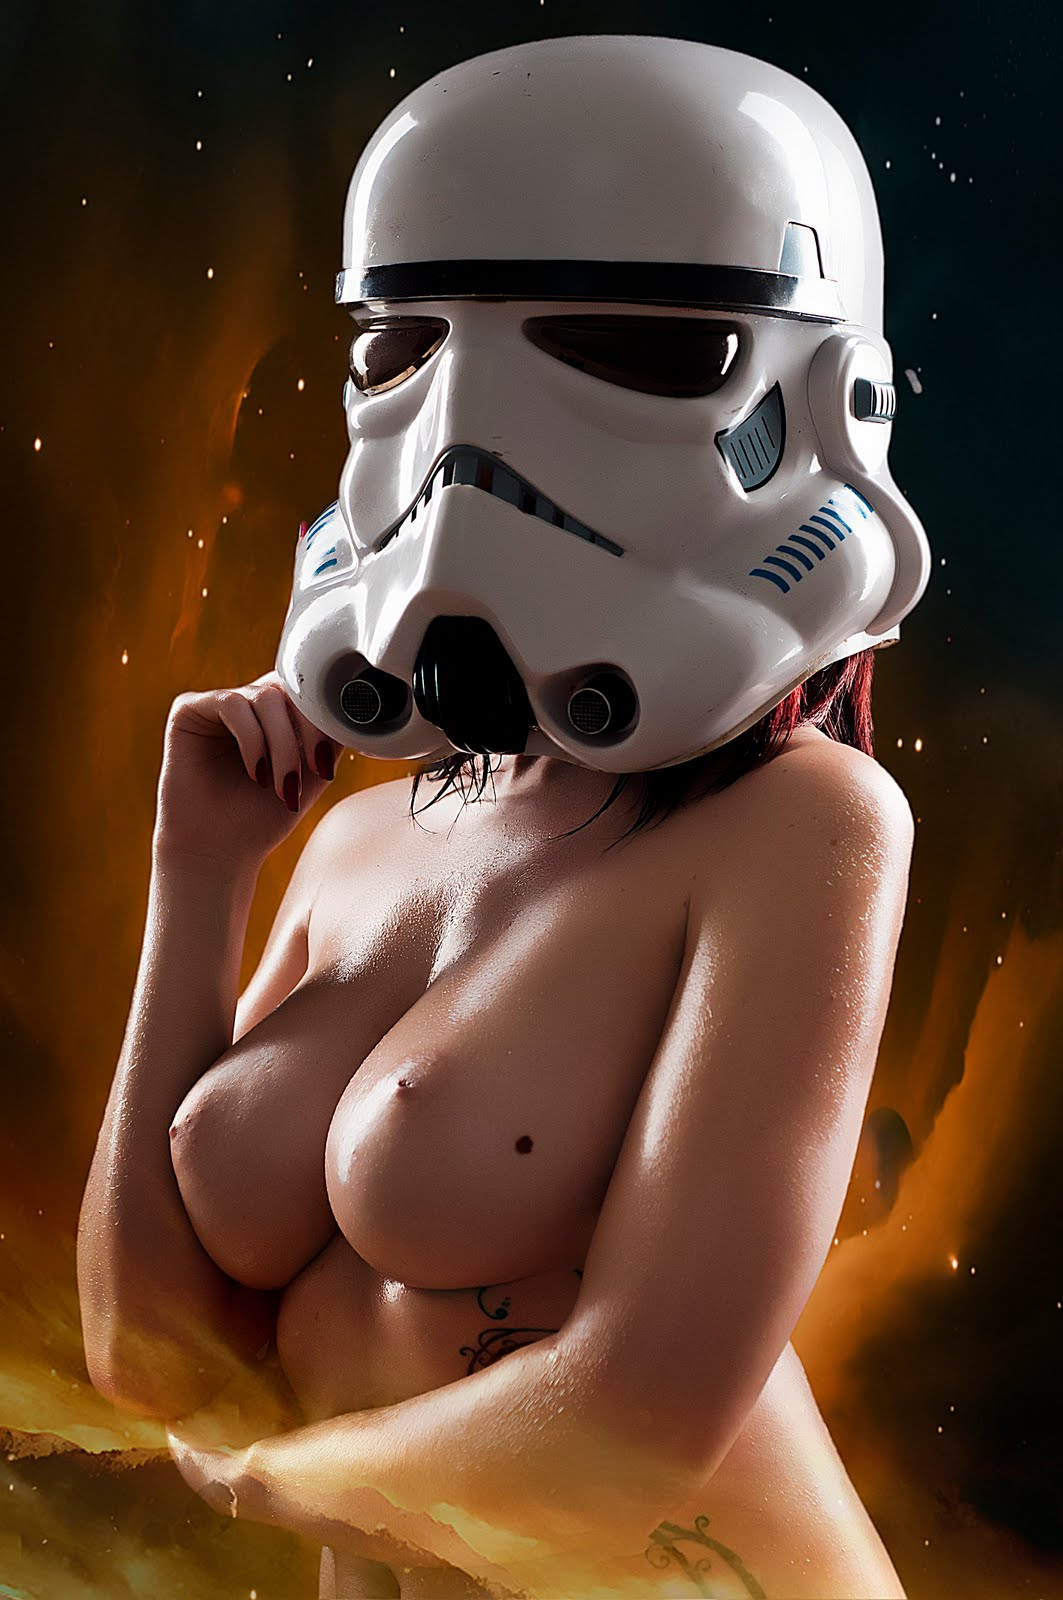 Star wars girl nude think, that